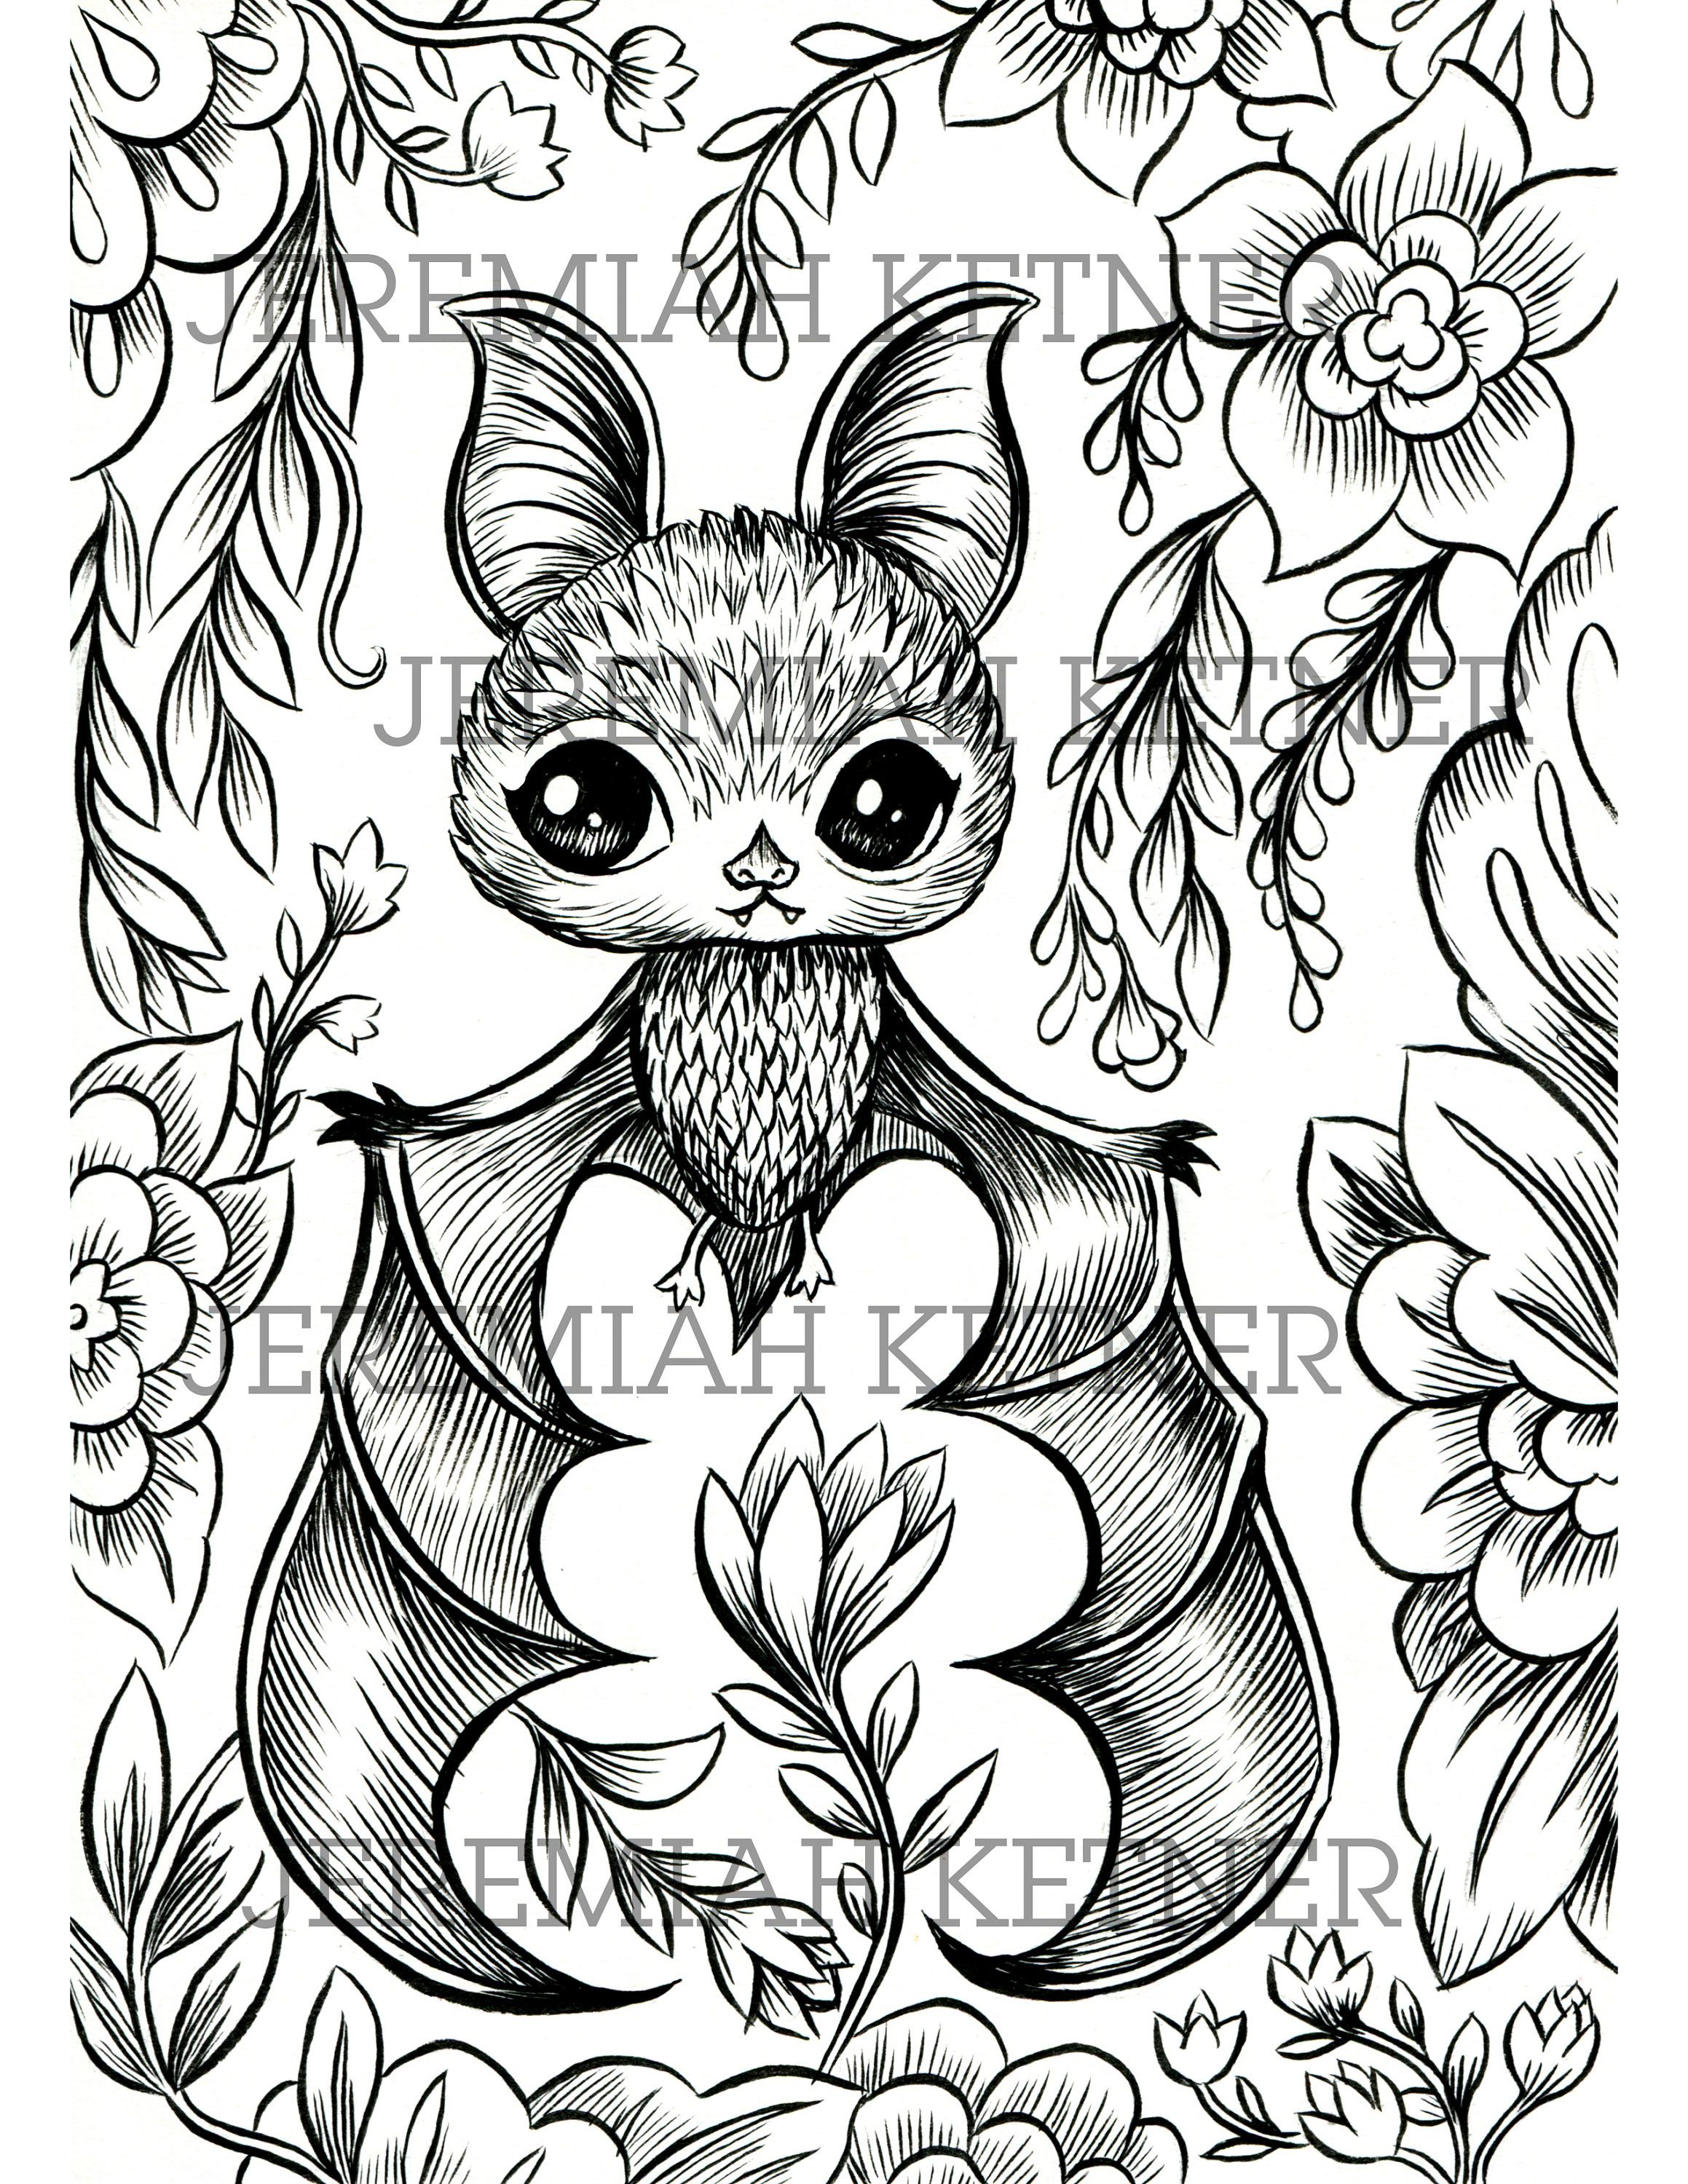 Halloween Free Craft Patterns Bat Outline Bat Silhouette Coloring Pages Inspirational